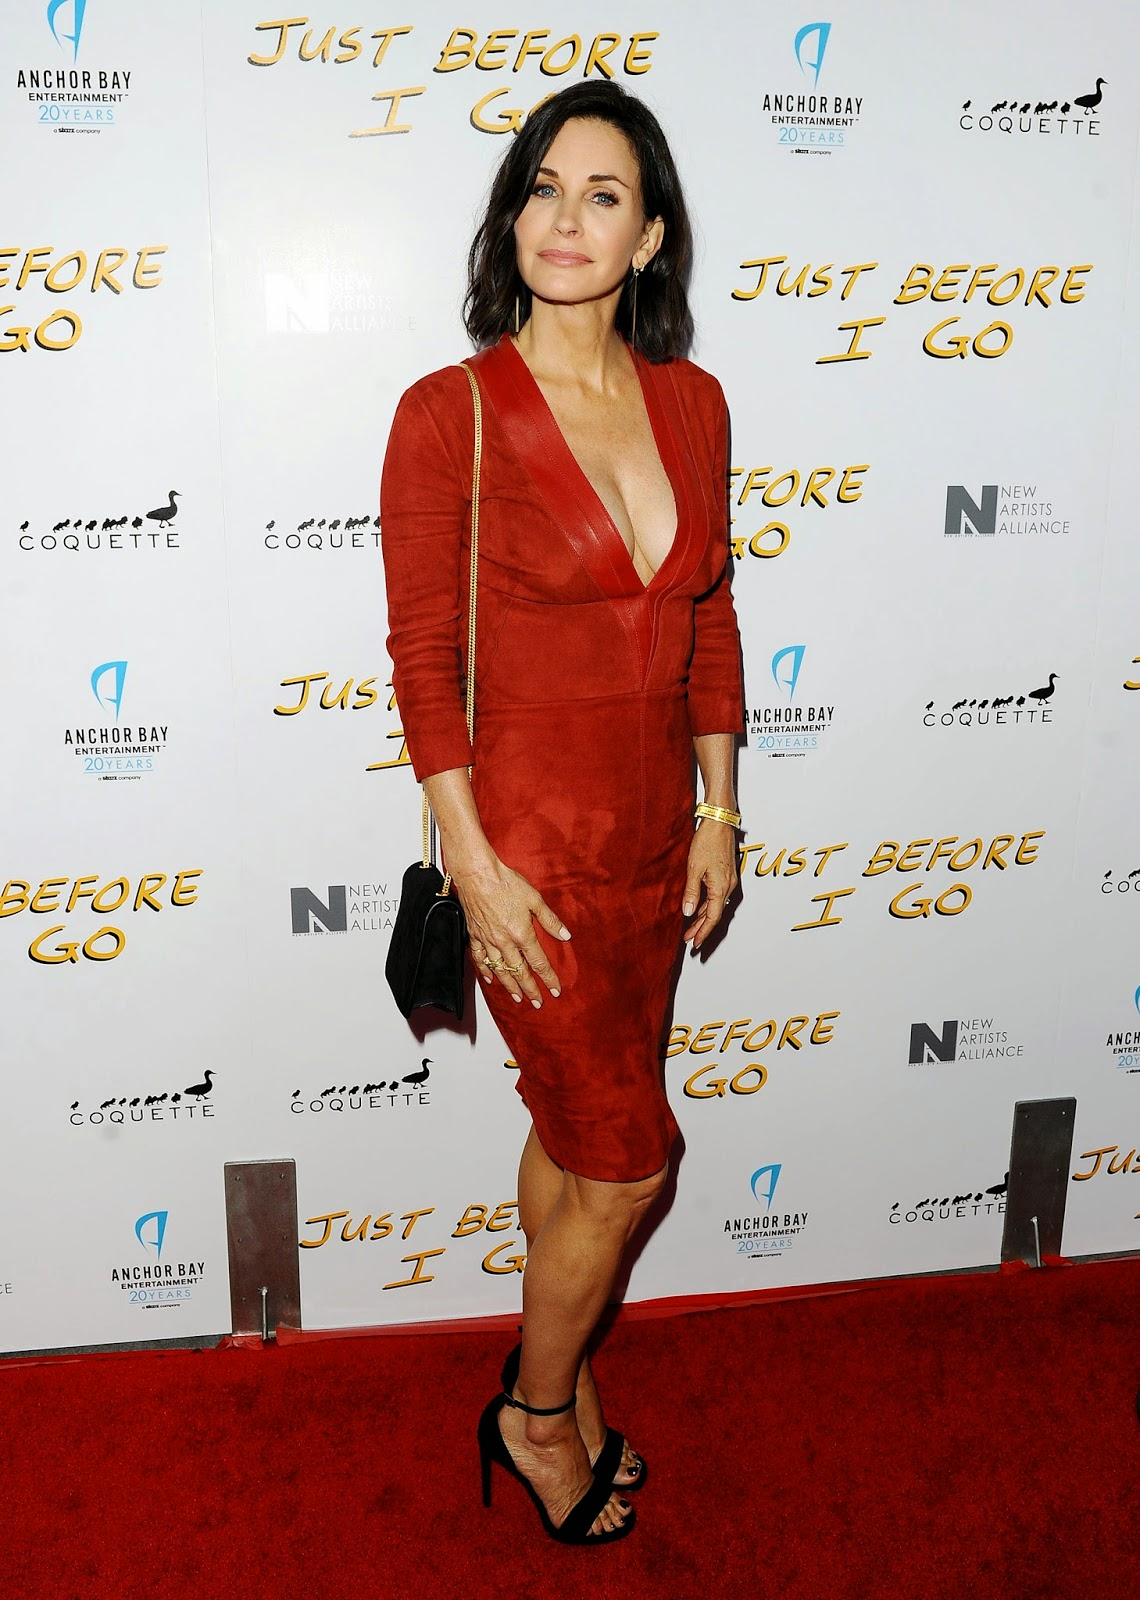 Courteney Cox movie premiere